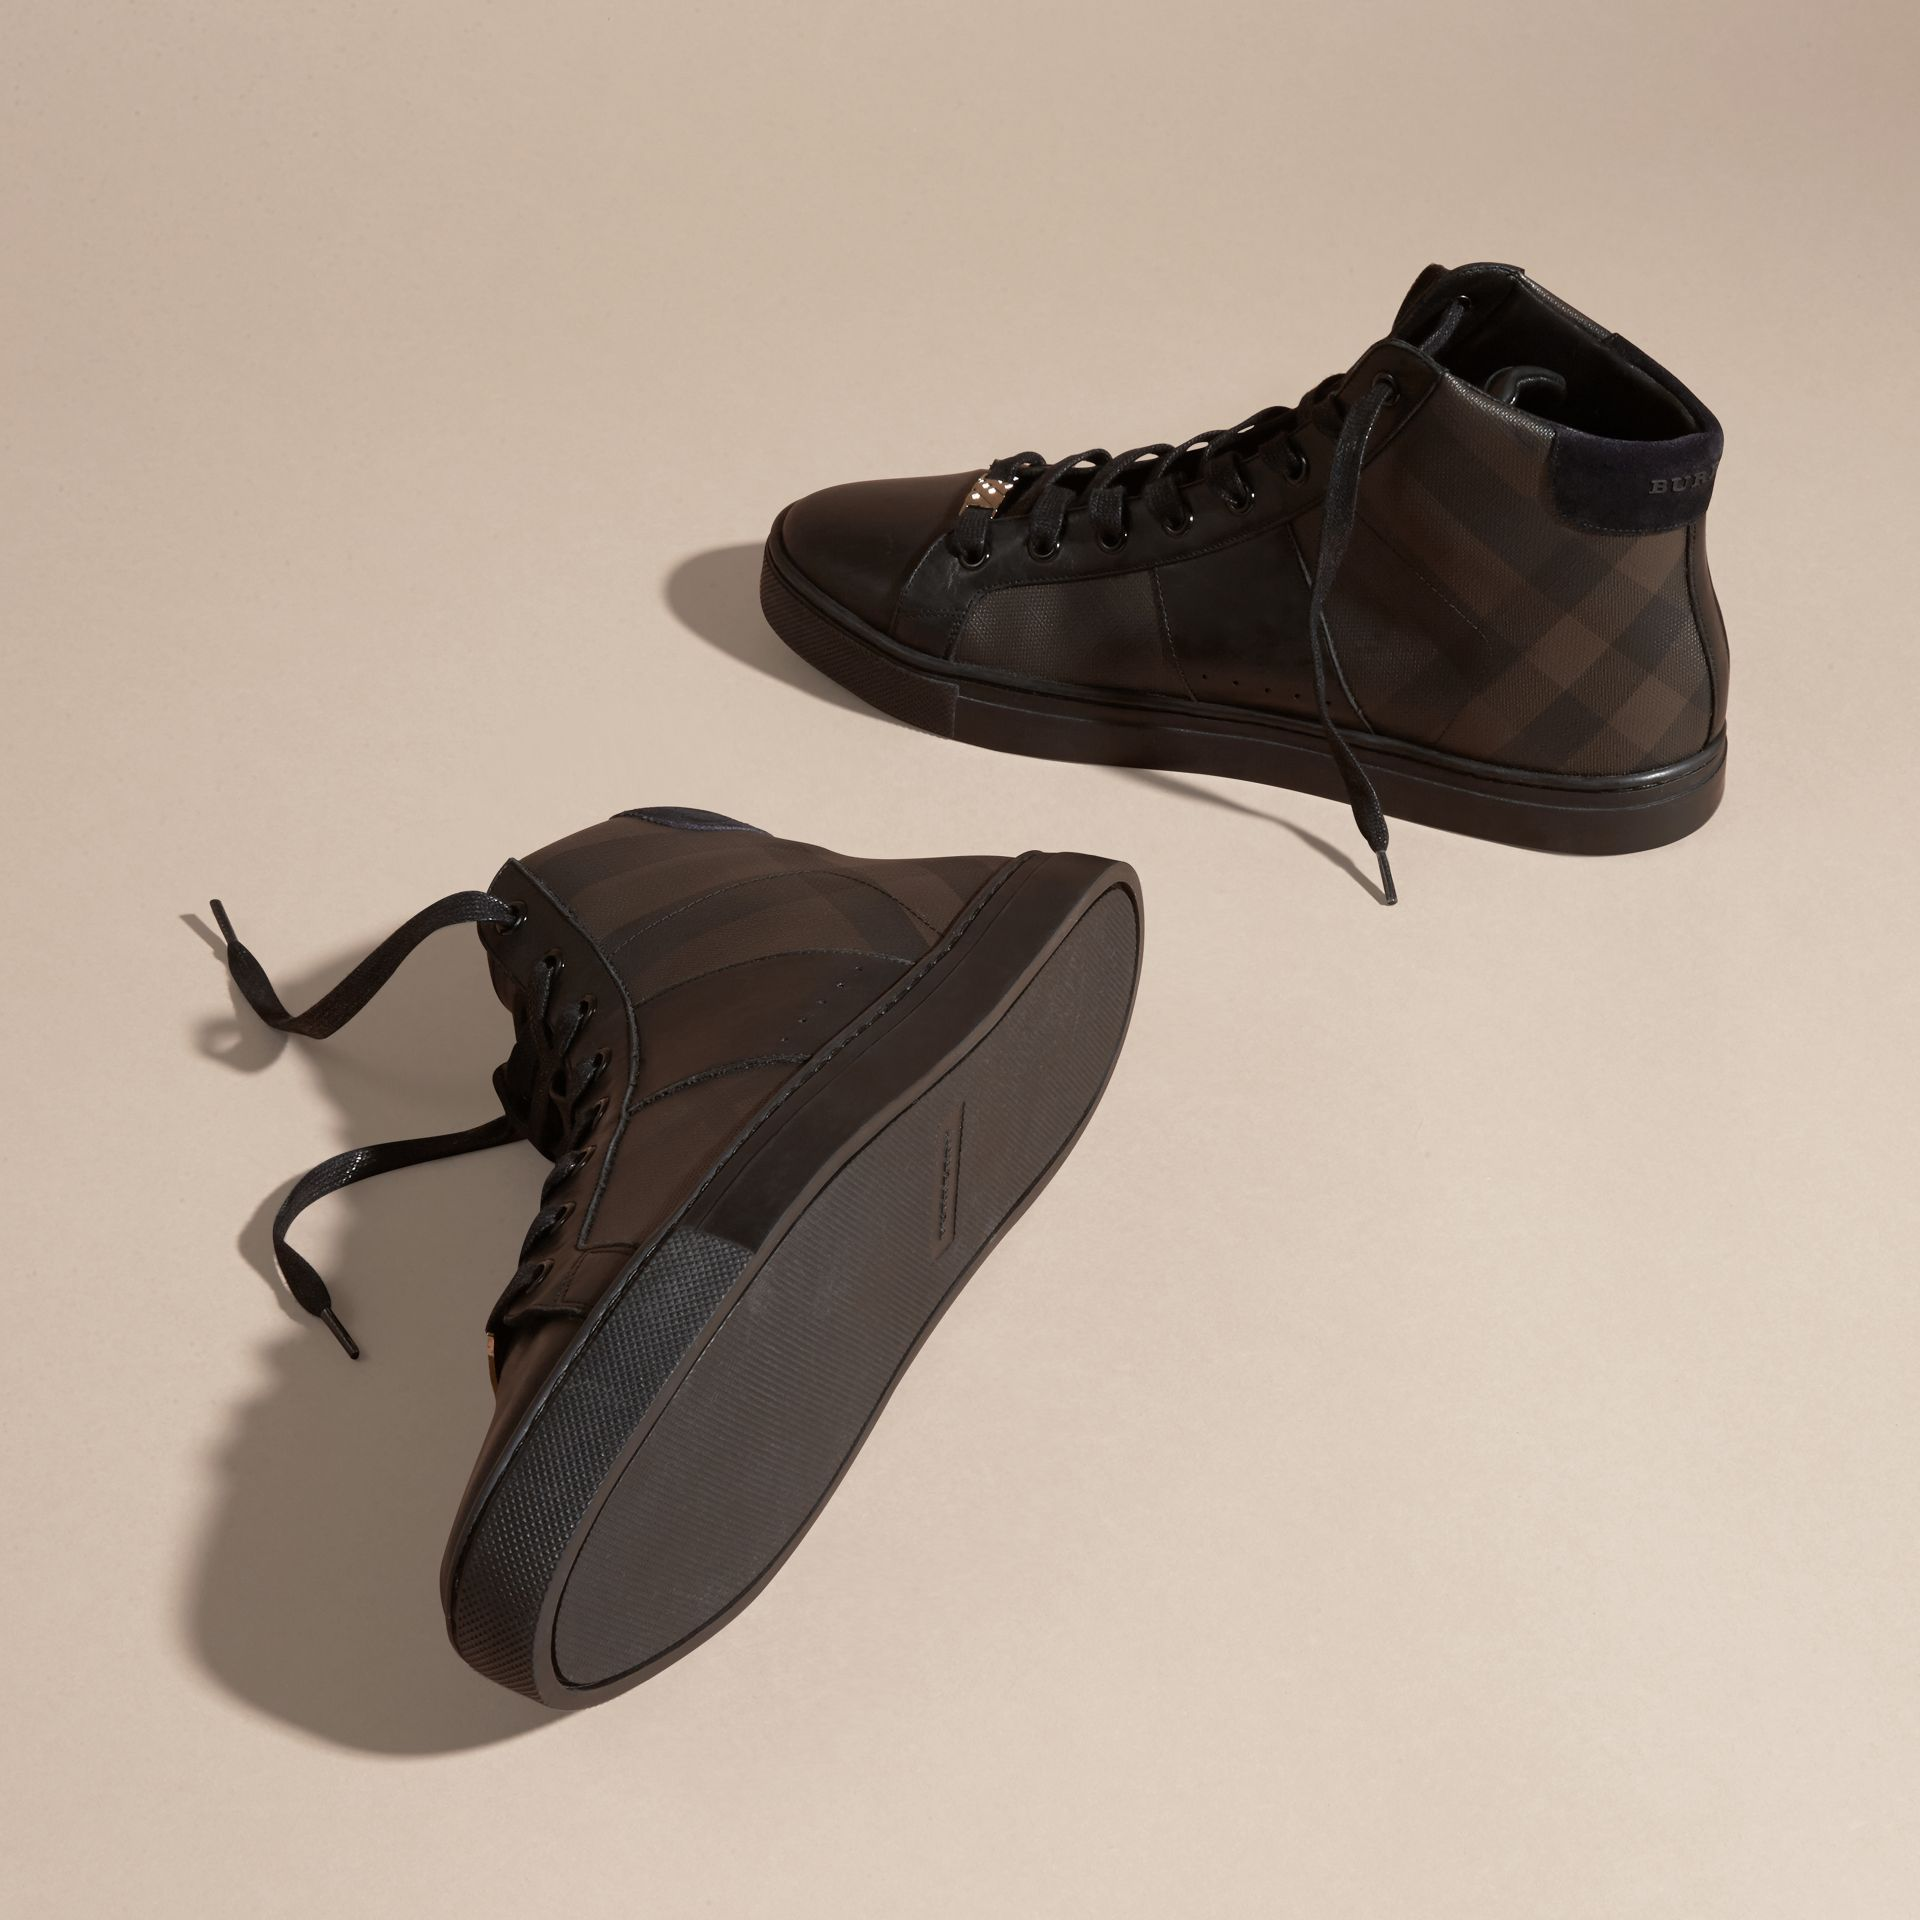 London Check and Leather High-Top Trainers in Smoked Chocolate - Men | Burberry Canada - gallery image 5